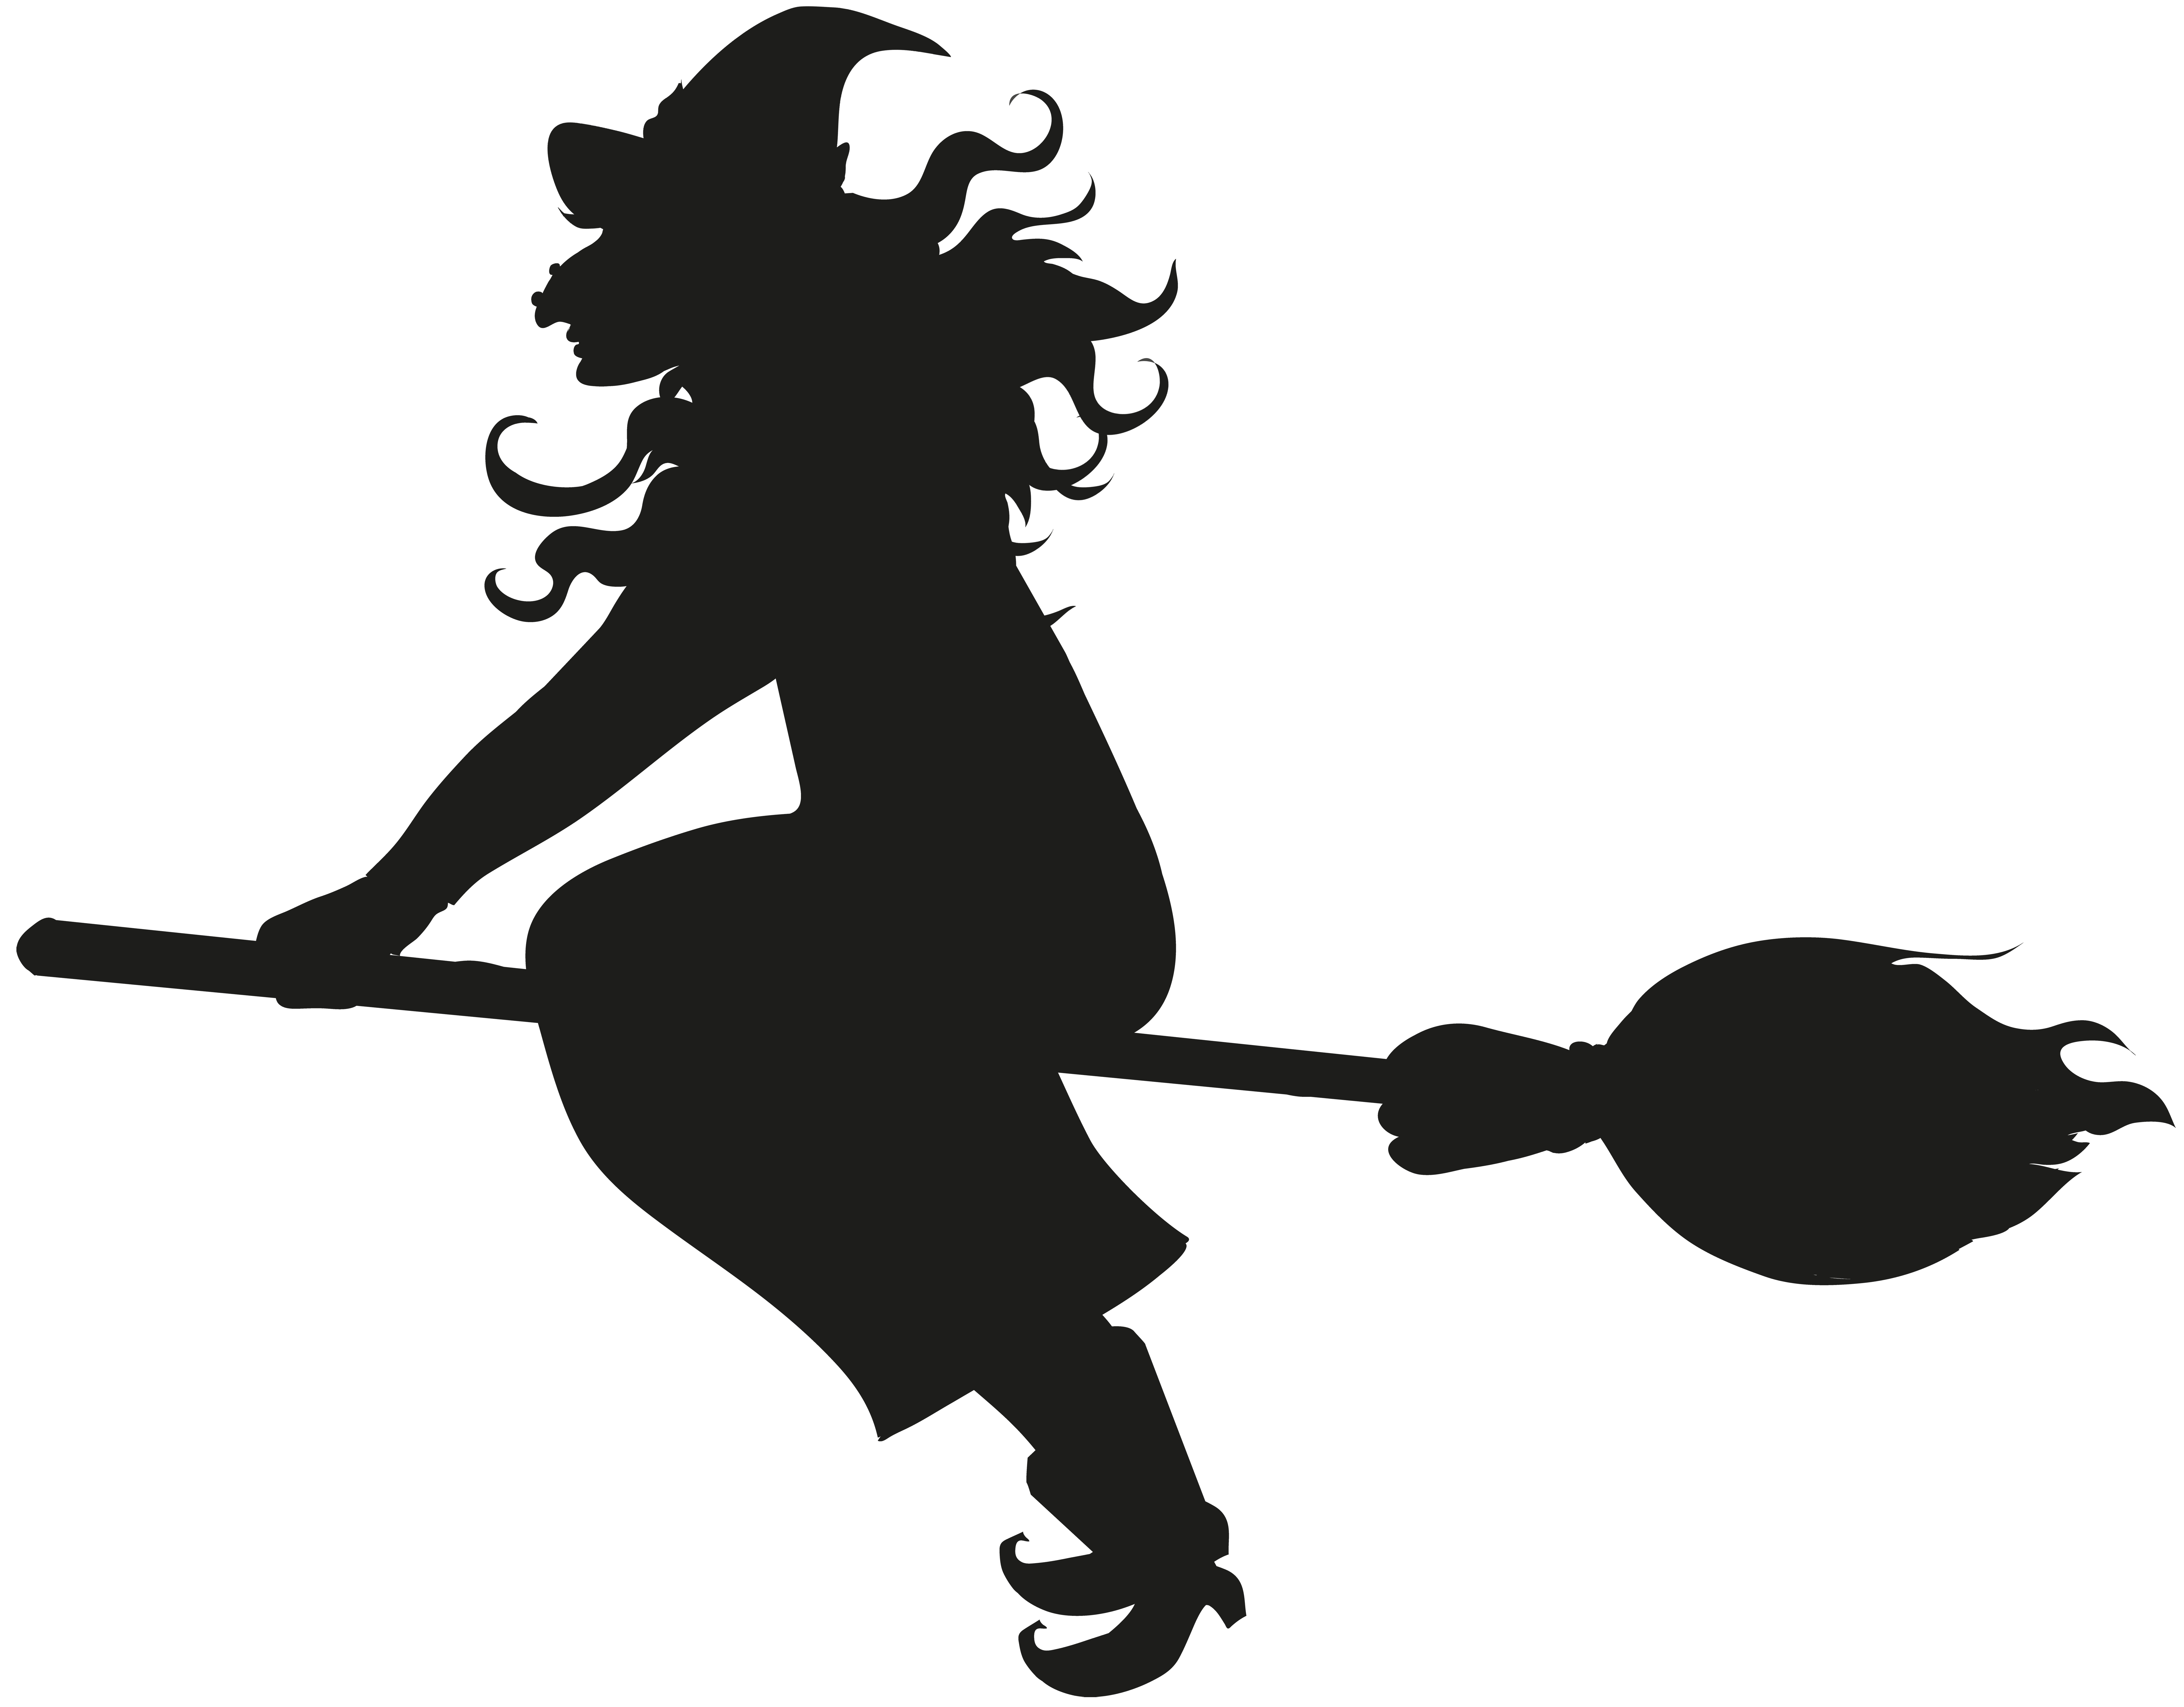 free witch silhouette clip art at getdrawings com free for rh getdrawings com microsoft com clipart free clipart.com free download